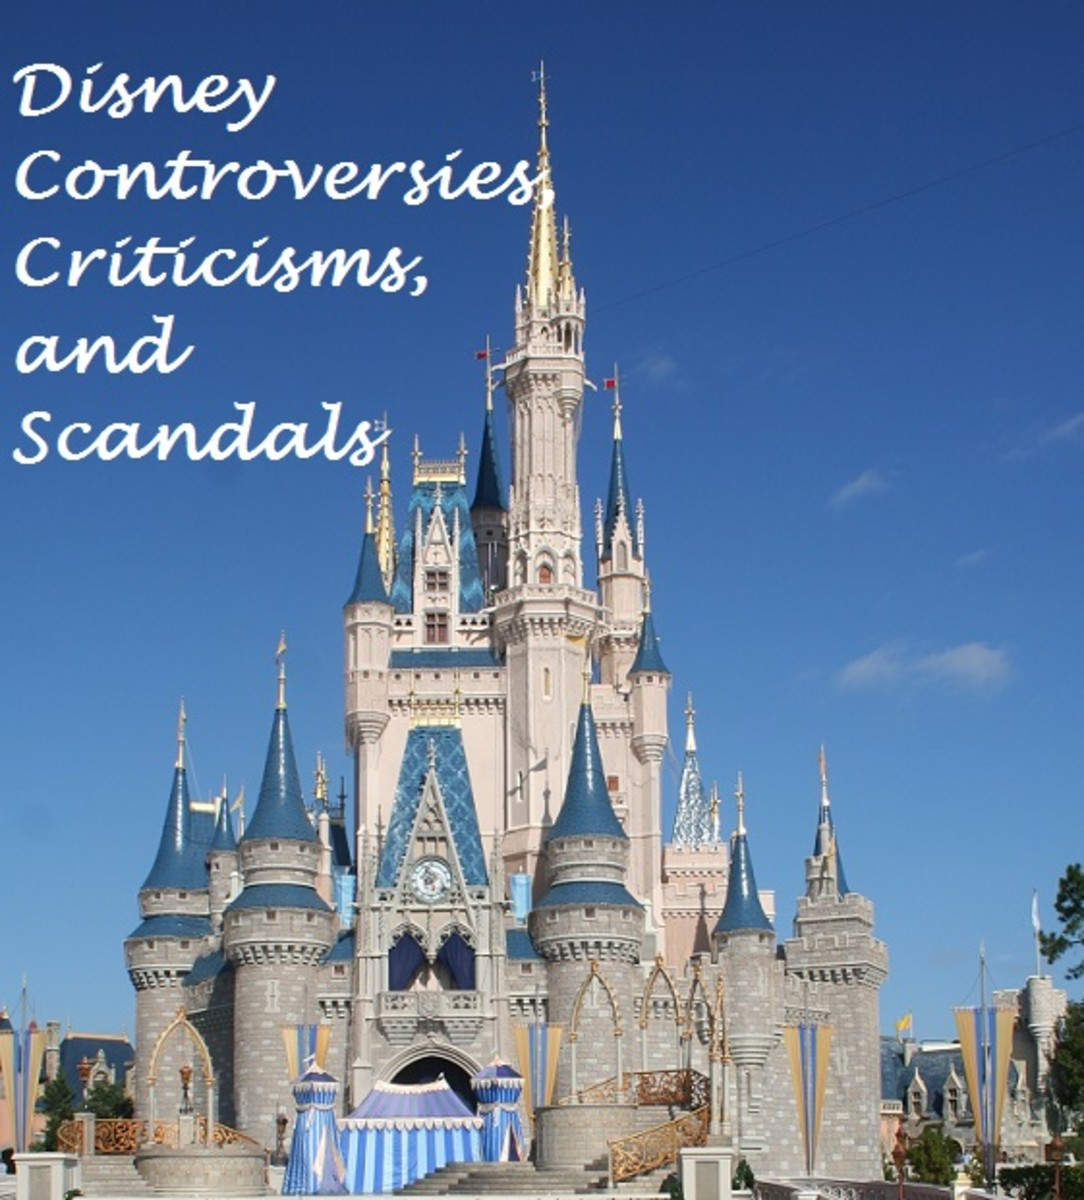 What kinds of scandals and issues has Disney faced in the past few years?